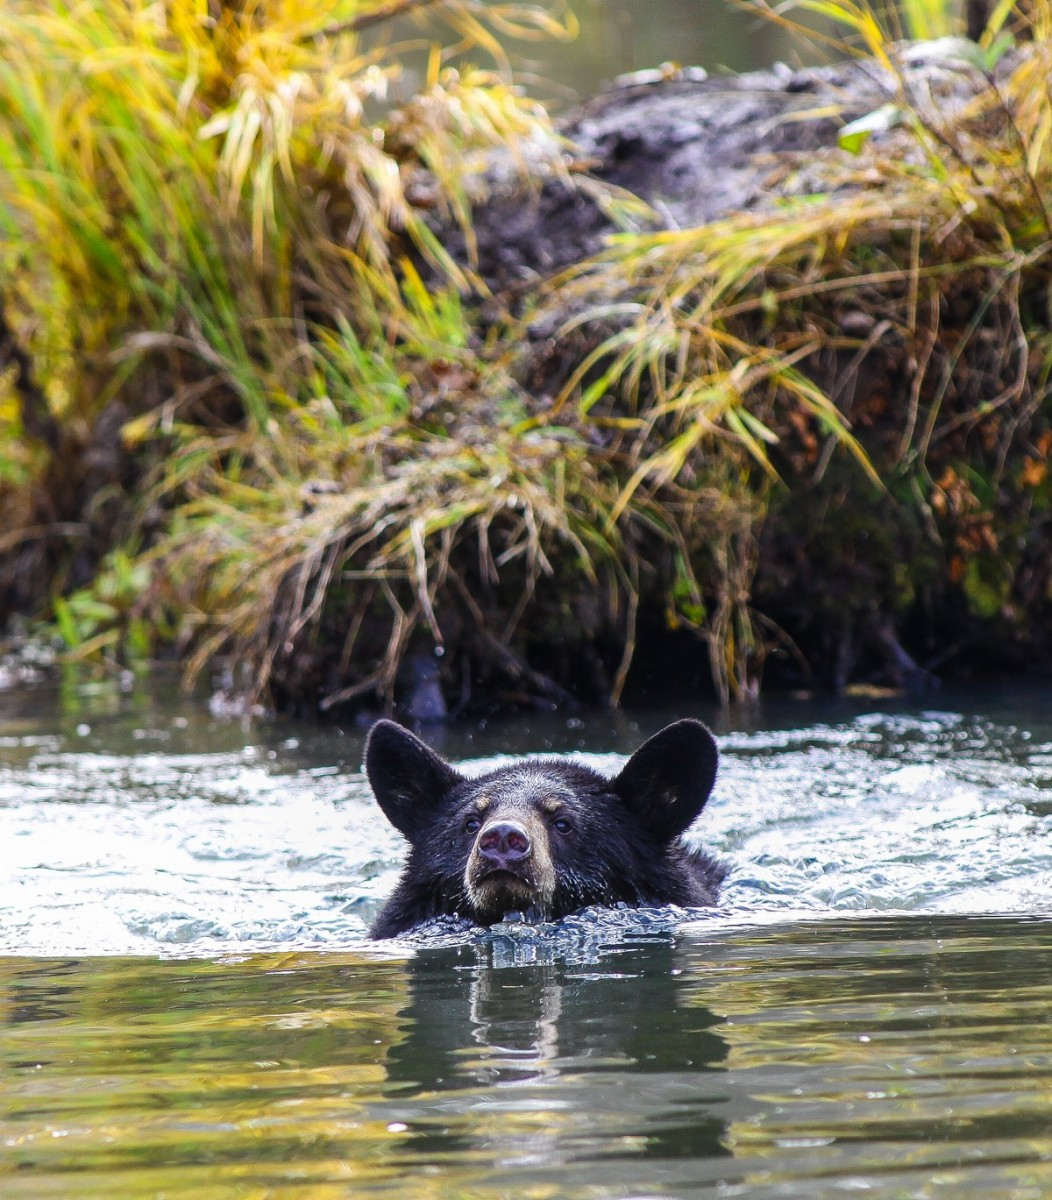 Black bear conservation